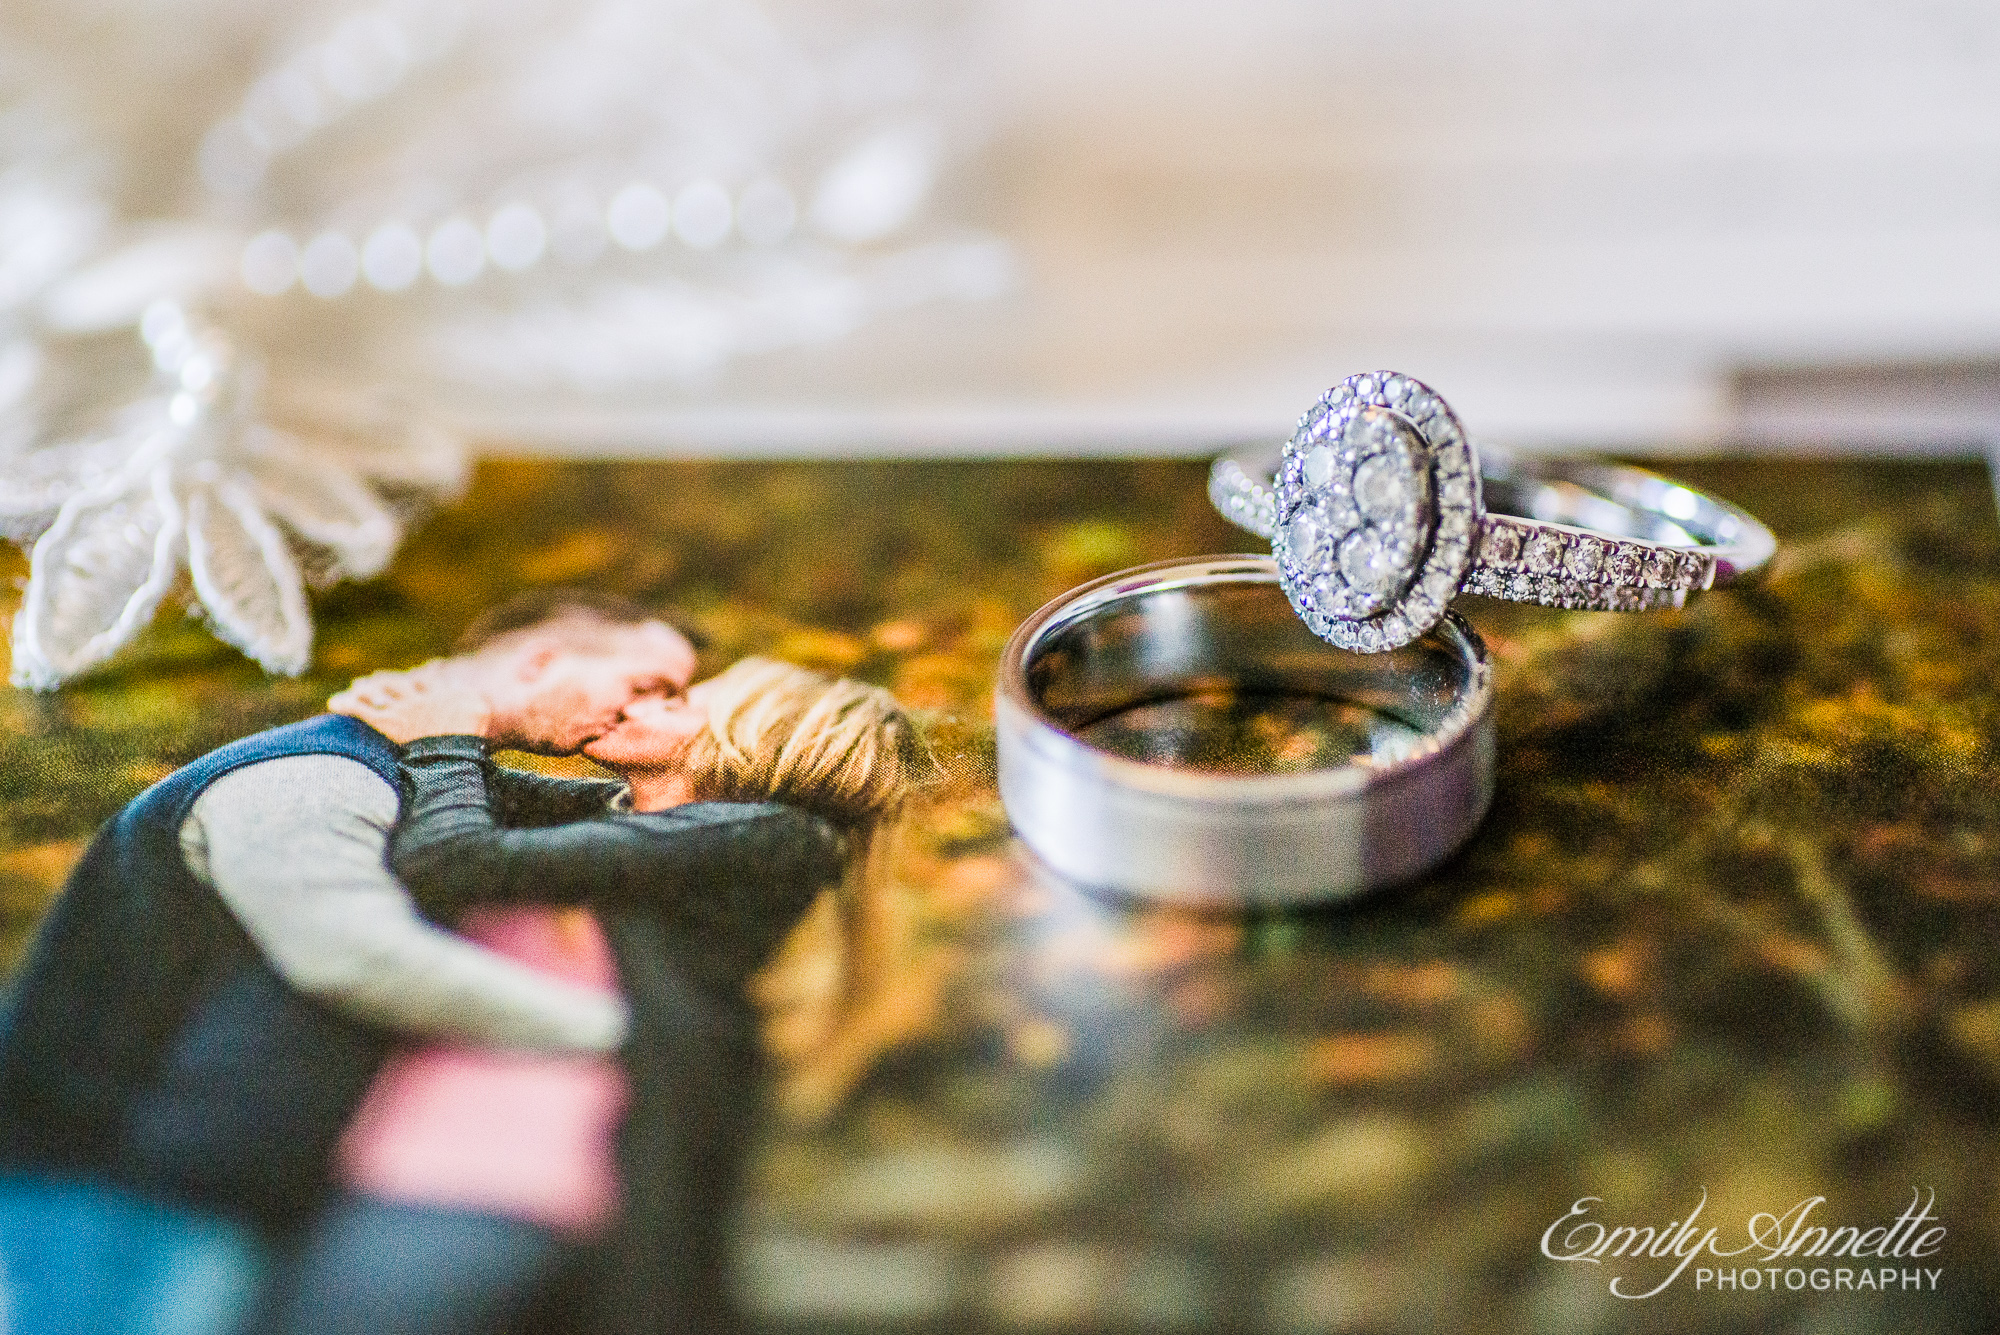 A diamond and silver wedding ring set next to a photo of the couple kissing at Herrington on the Bay in North Beach, Maryland